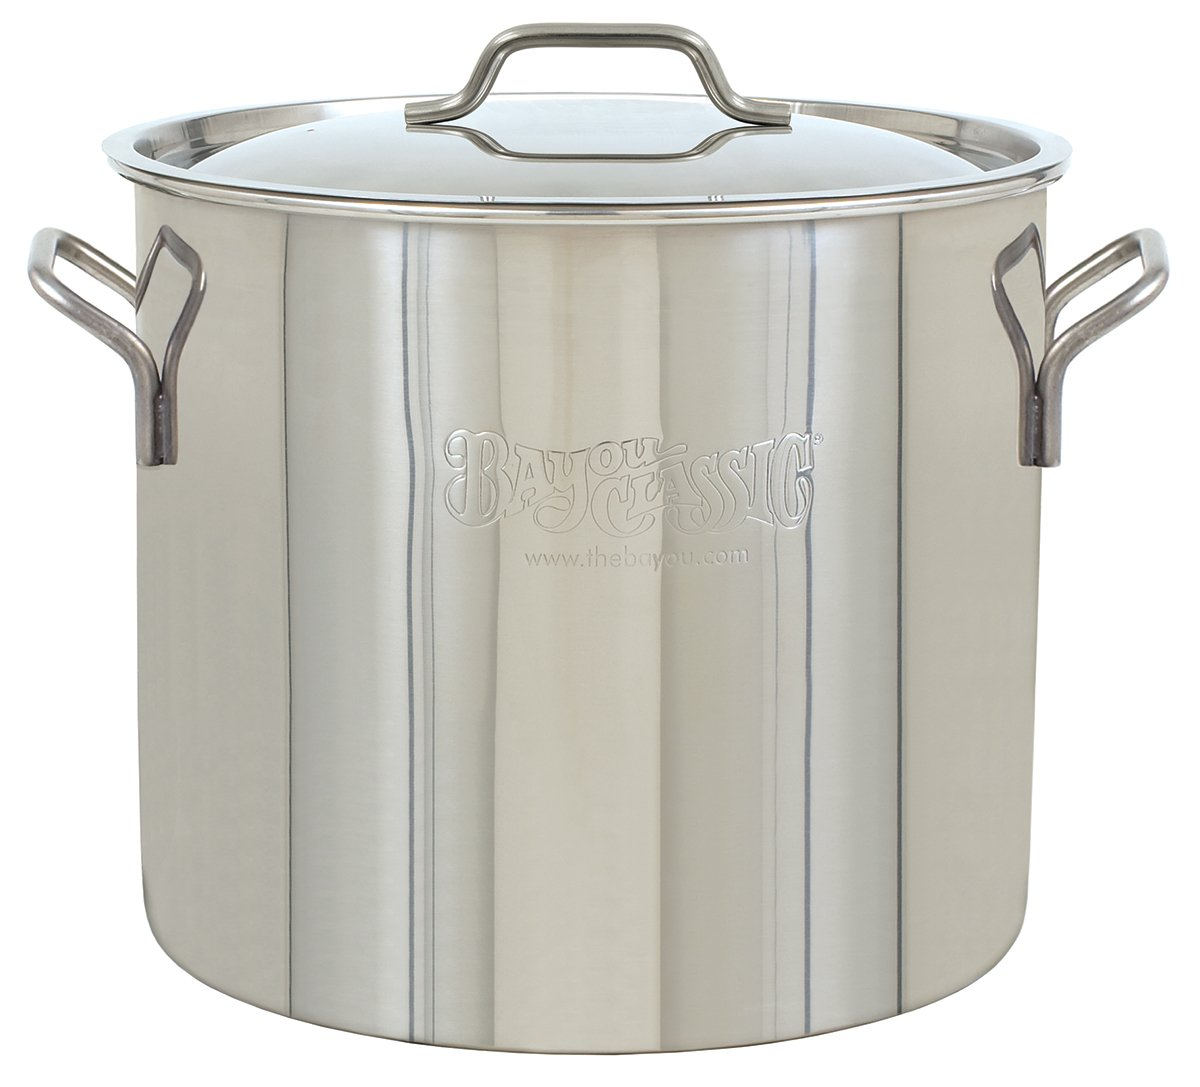 Bayou Classic Bayou Stainless Brew Kettle, 30 quart, Stainless Steel